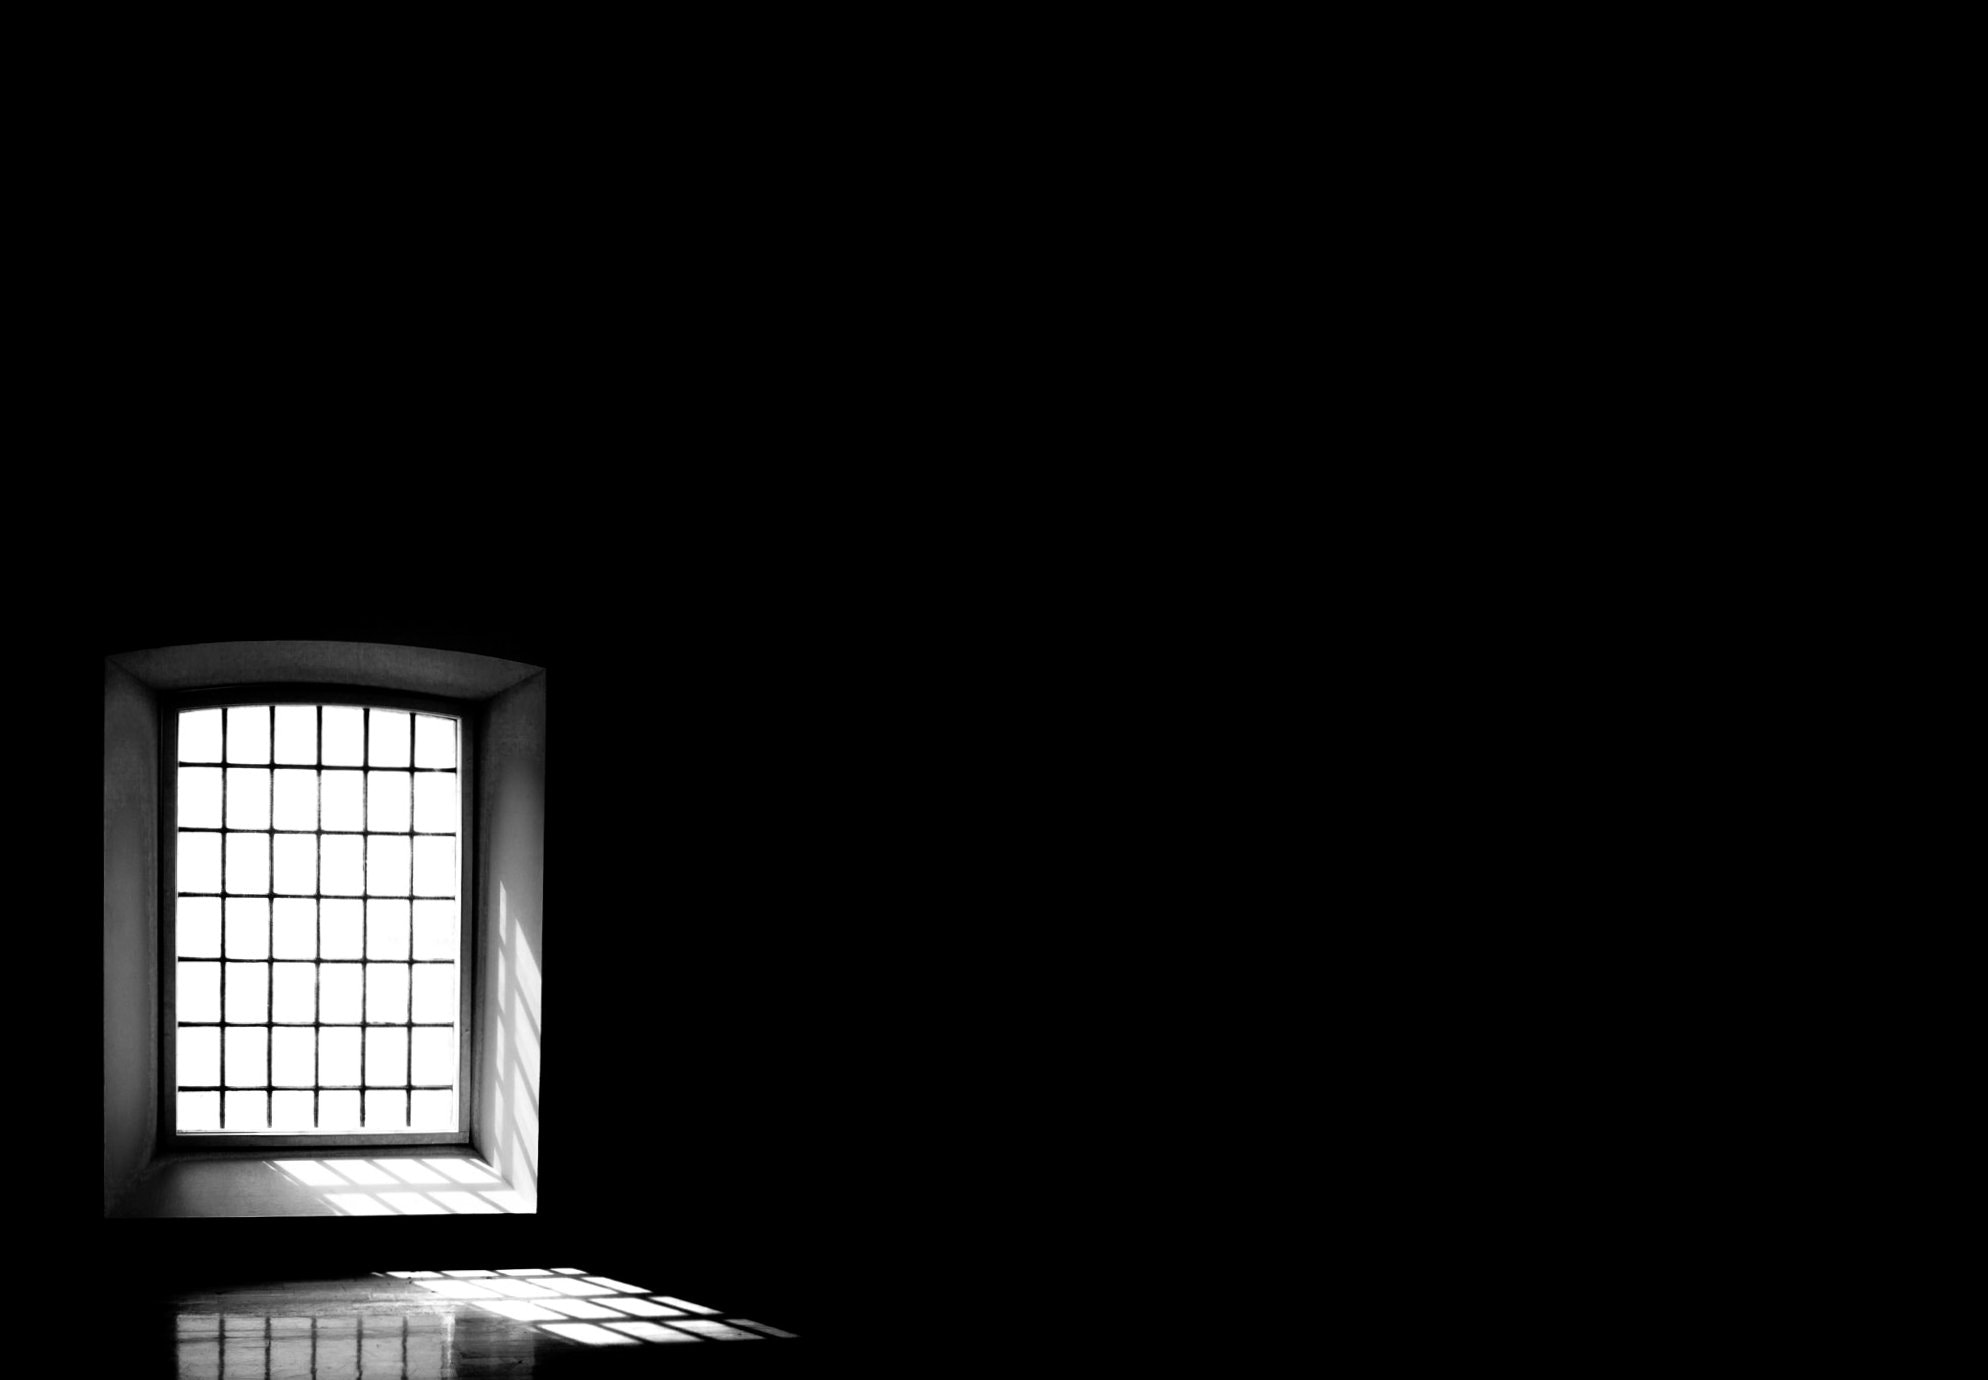 Photograph Window by Tony Eccles on 500px